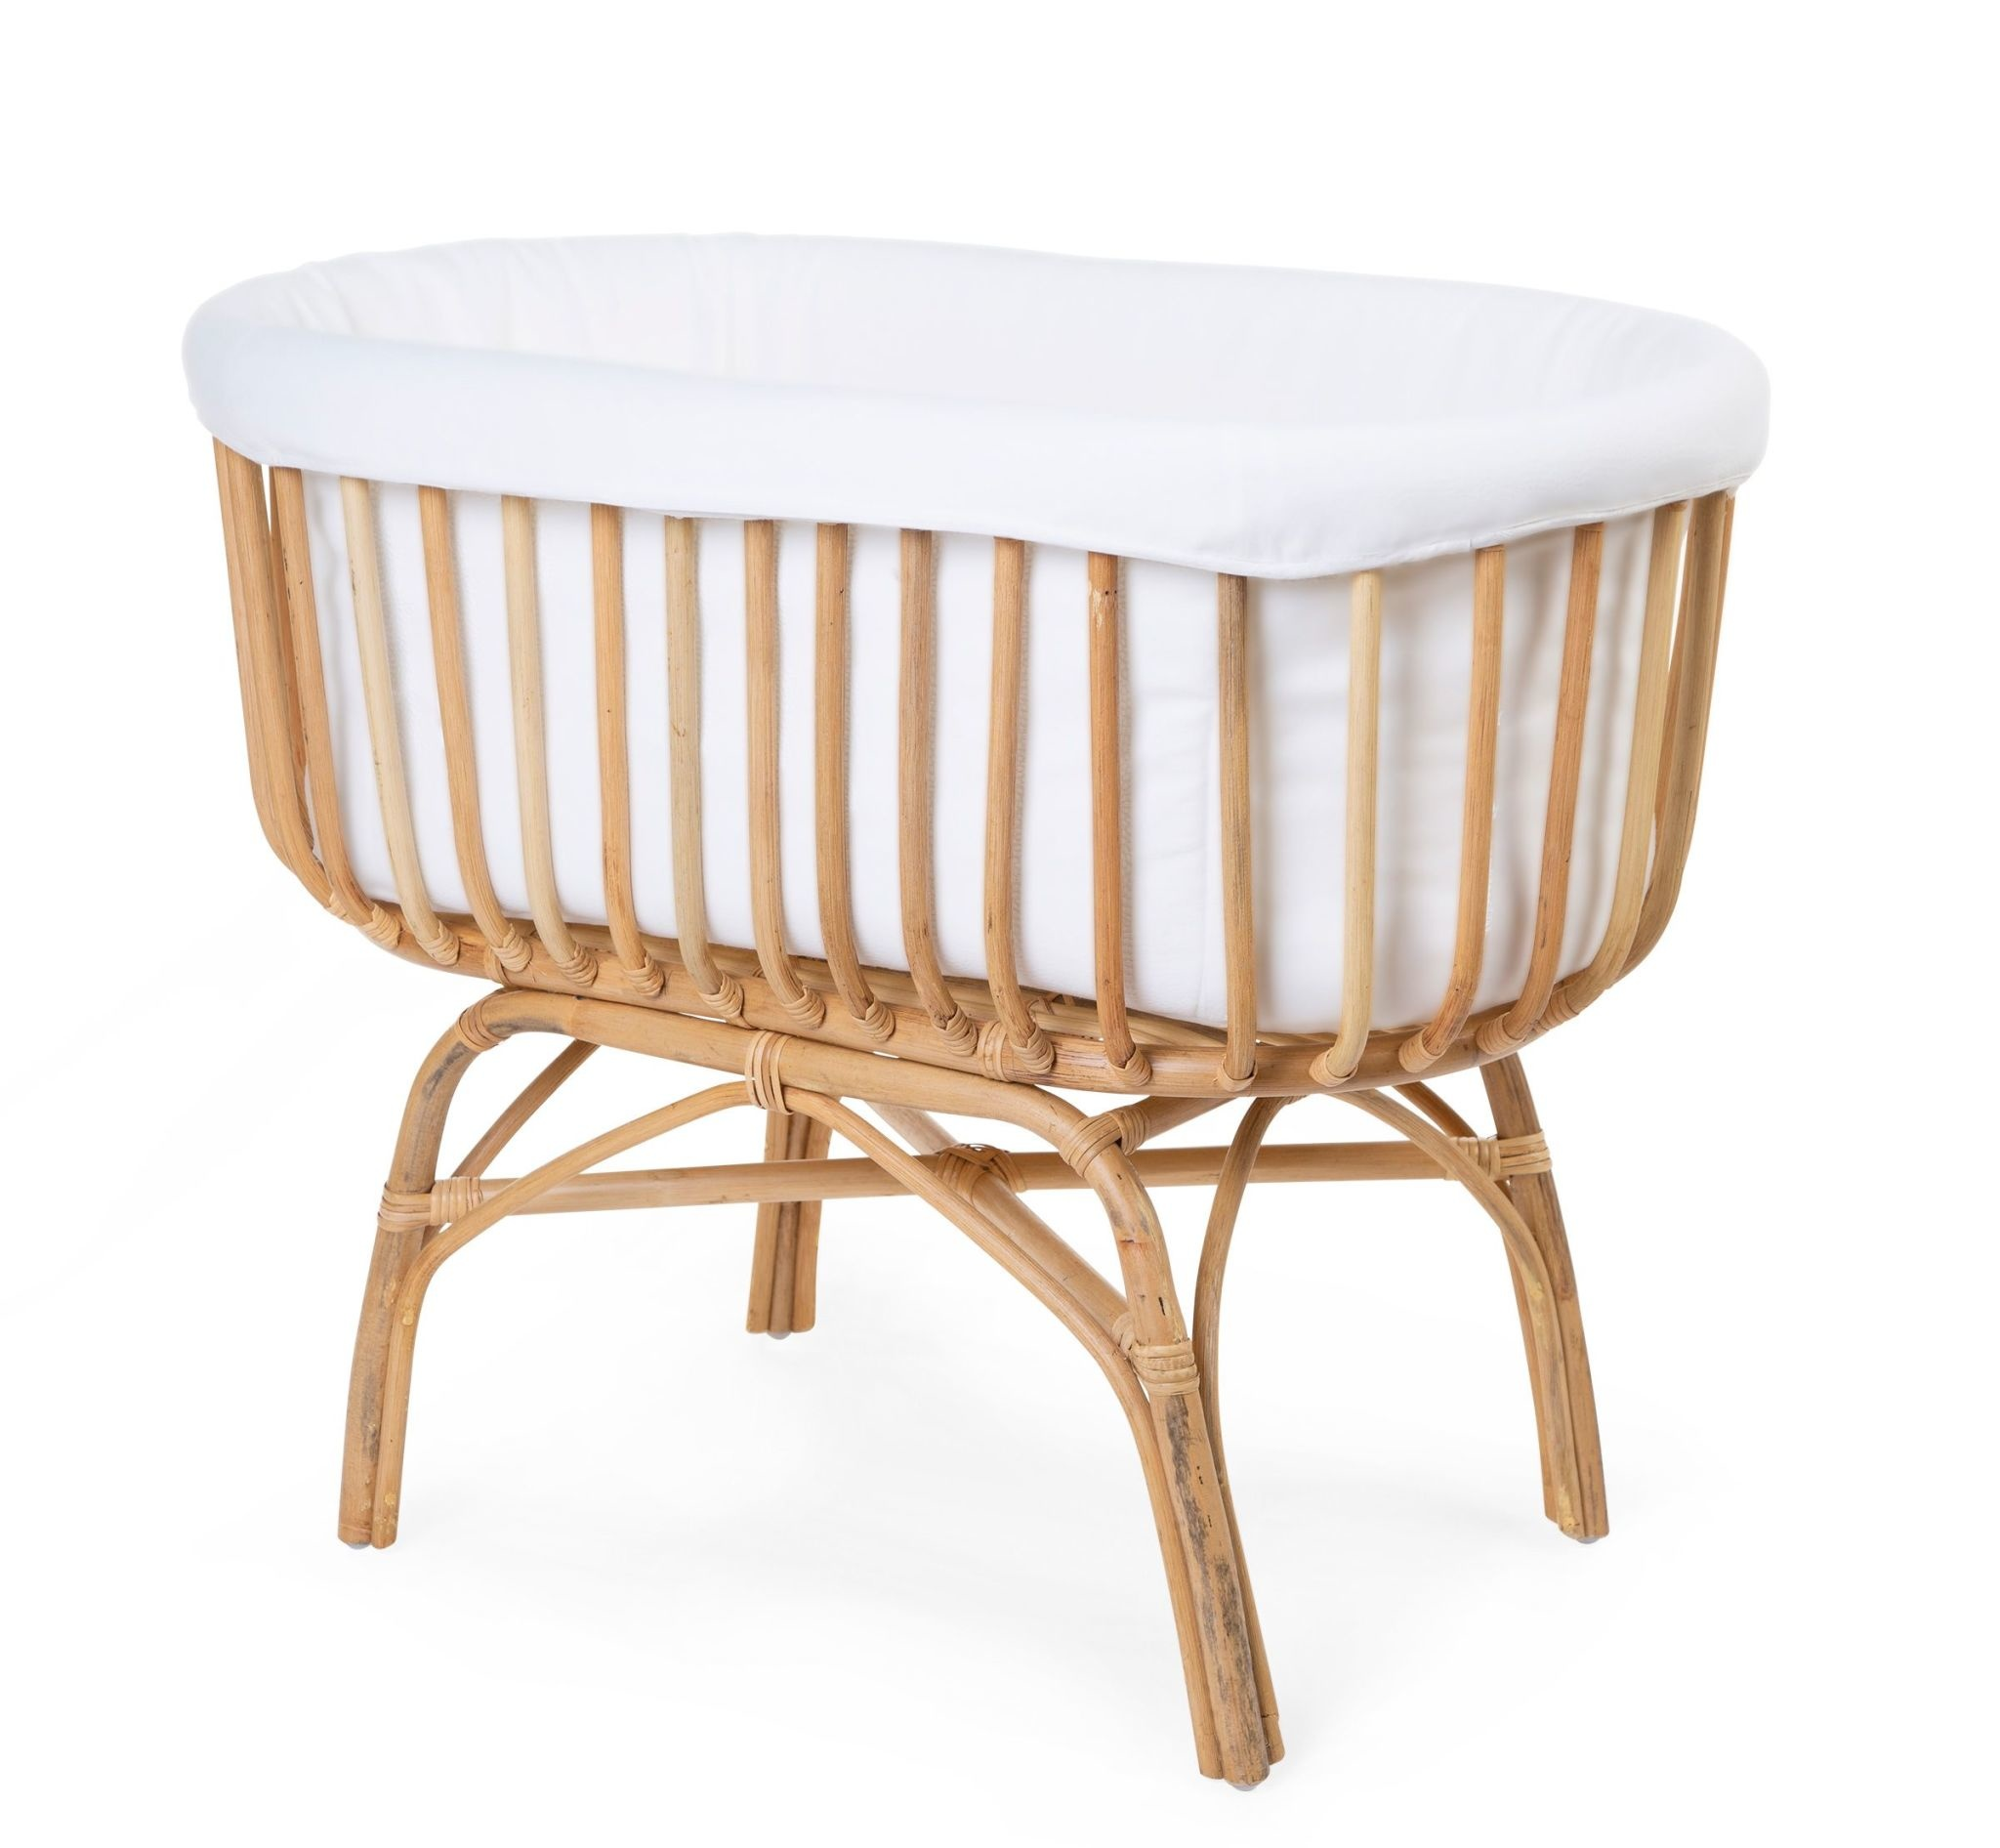 Rattan cradle cover jersey off-white-1